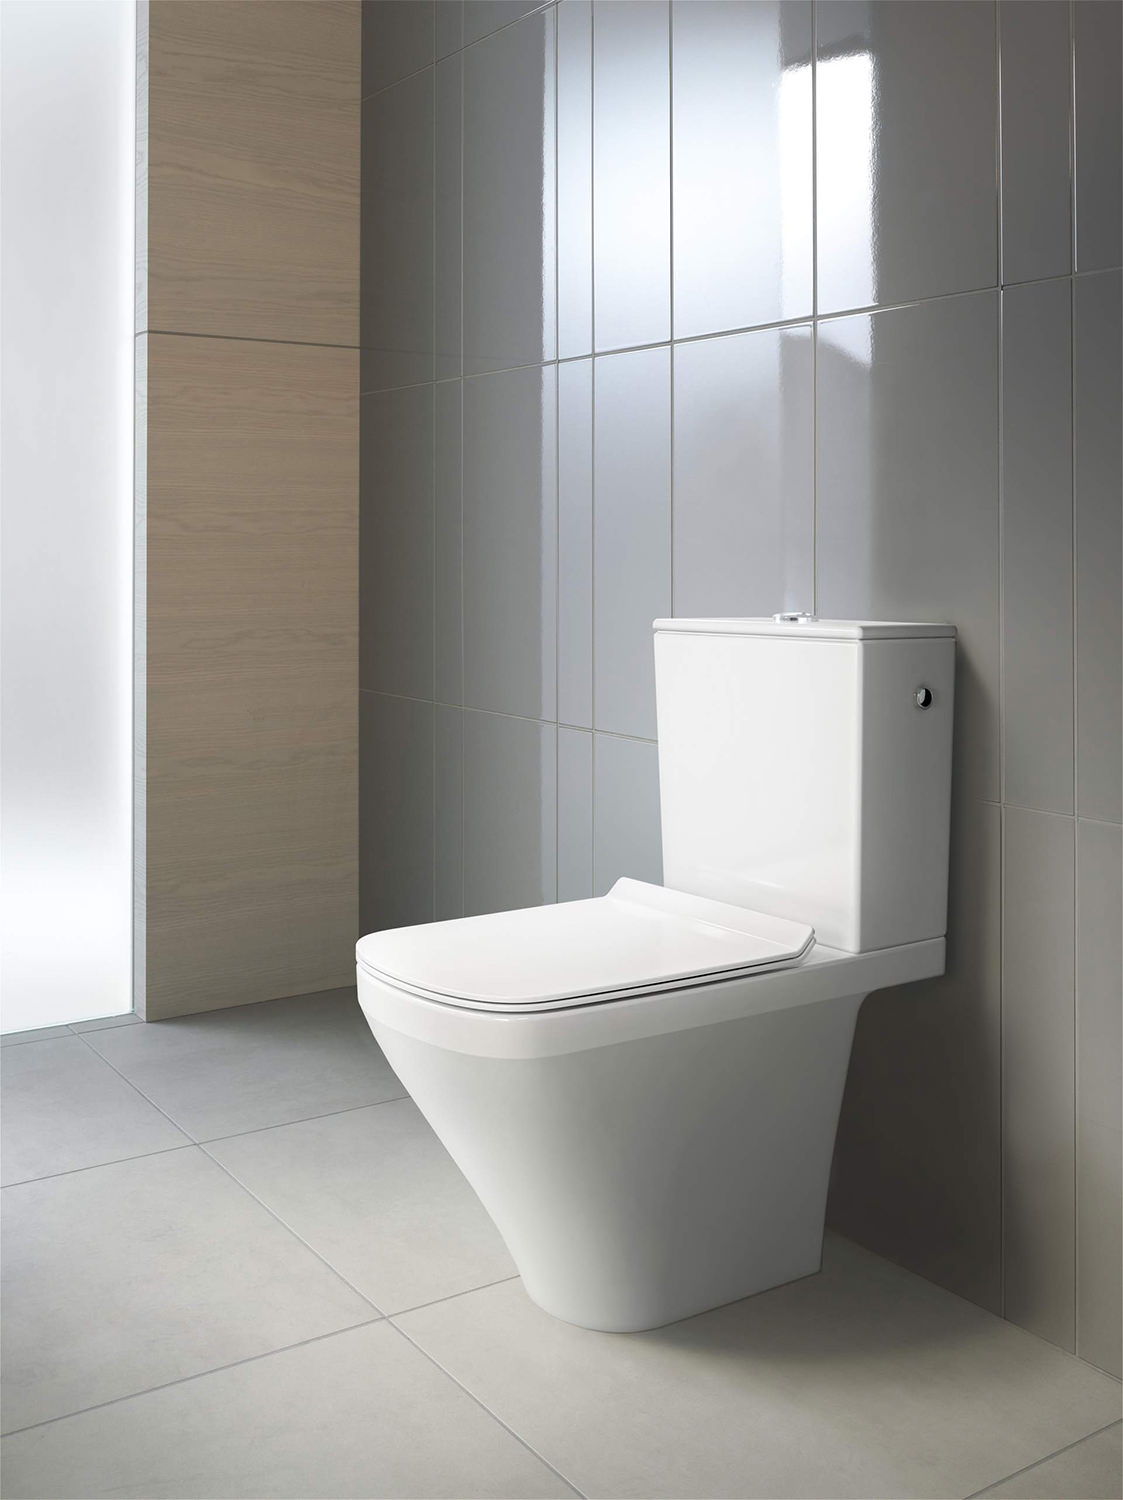 Duravit Durastyle 370 X 630mm Close Coupled Washdown